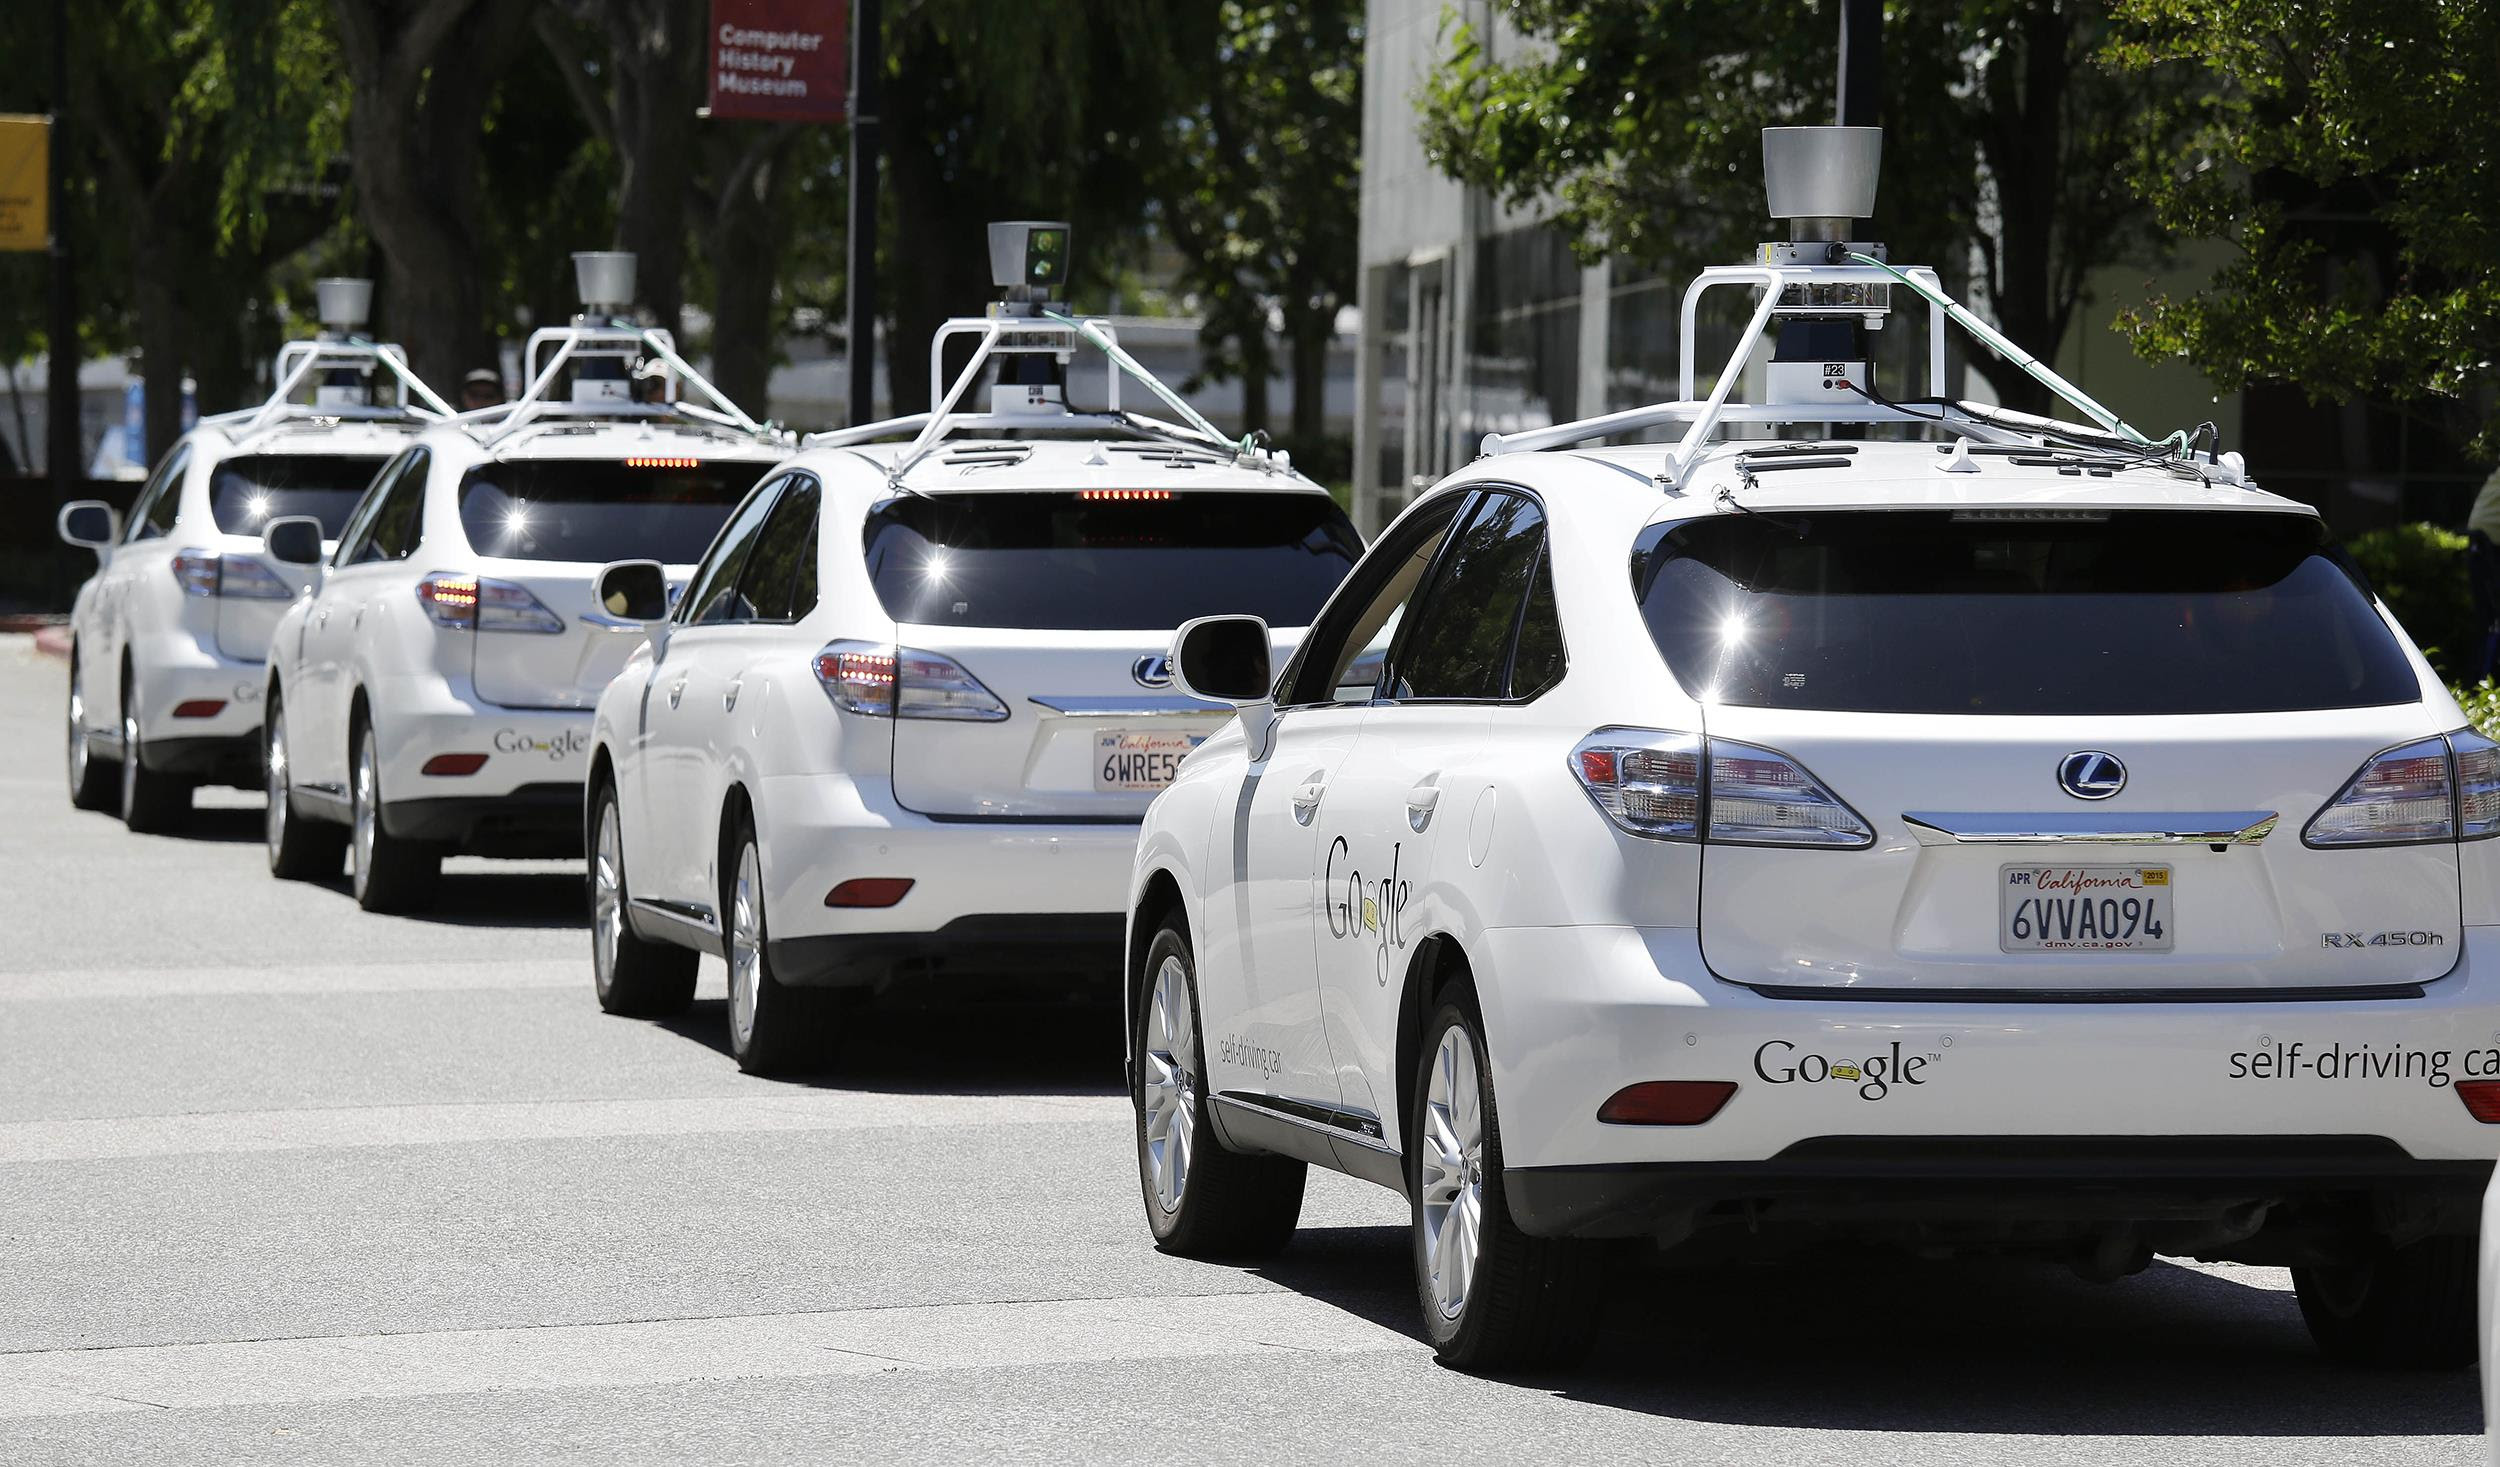 http://gazettereview.com/wp-content/uploads/2015/12/Google-Self-Driving-Cars.jpg